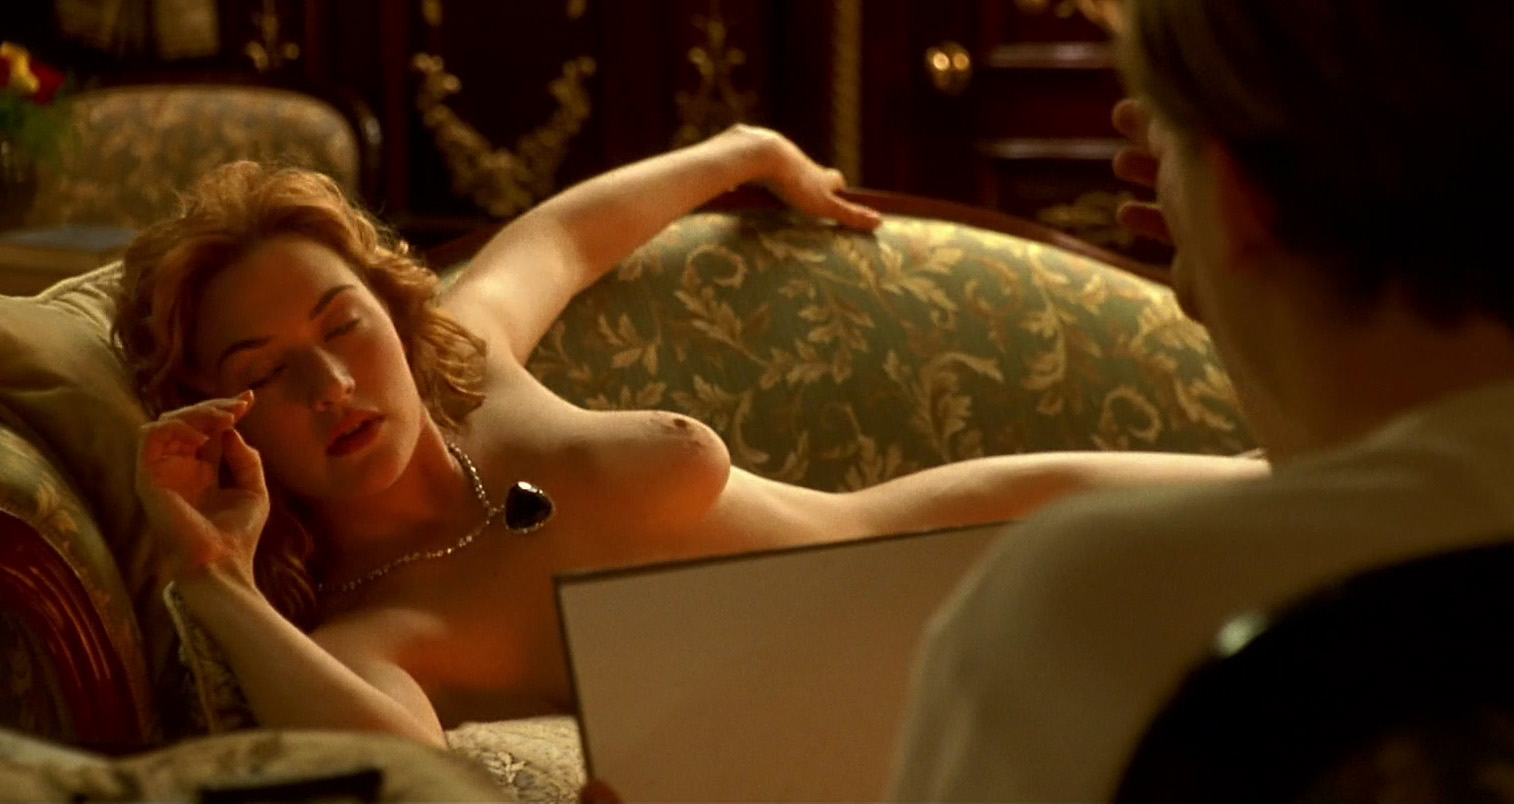 Kate winslet butt naked